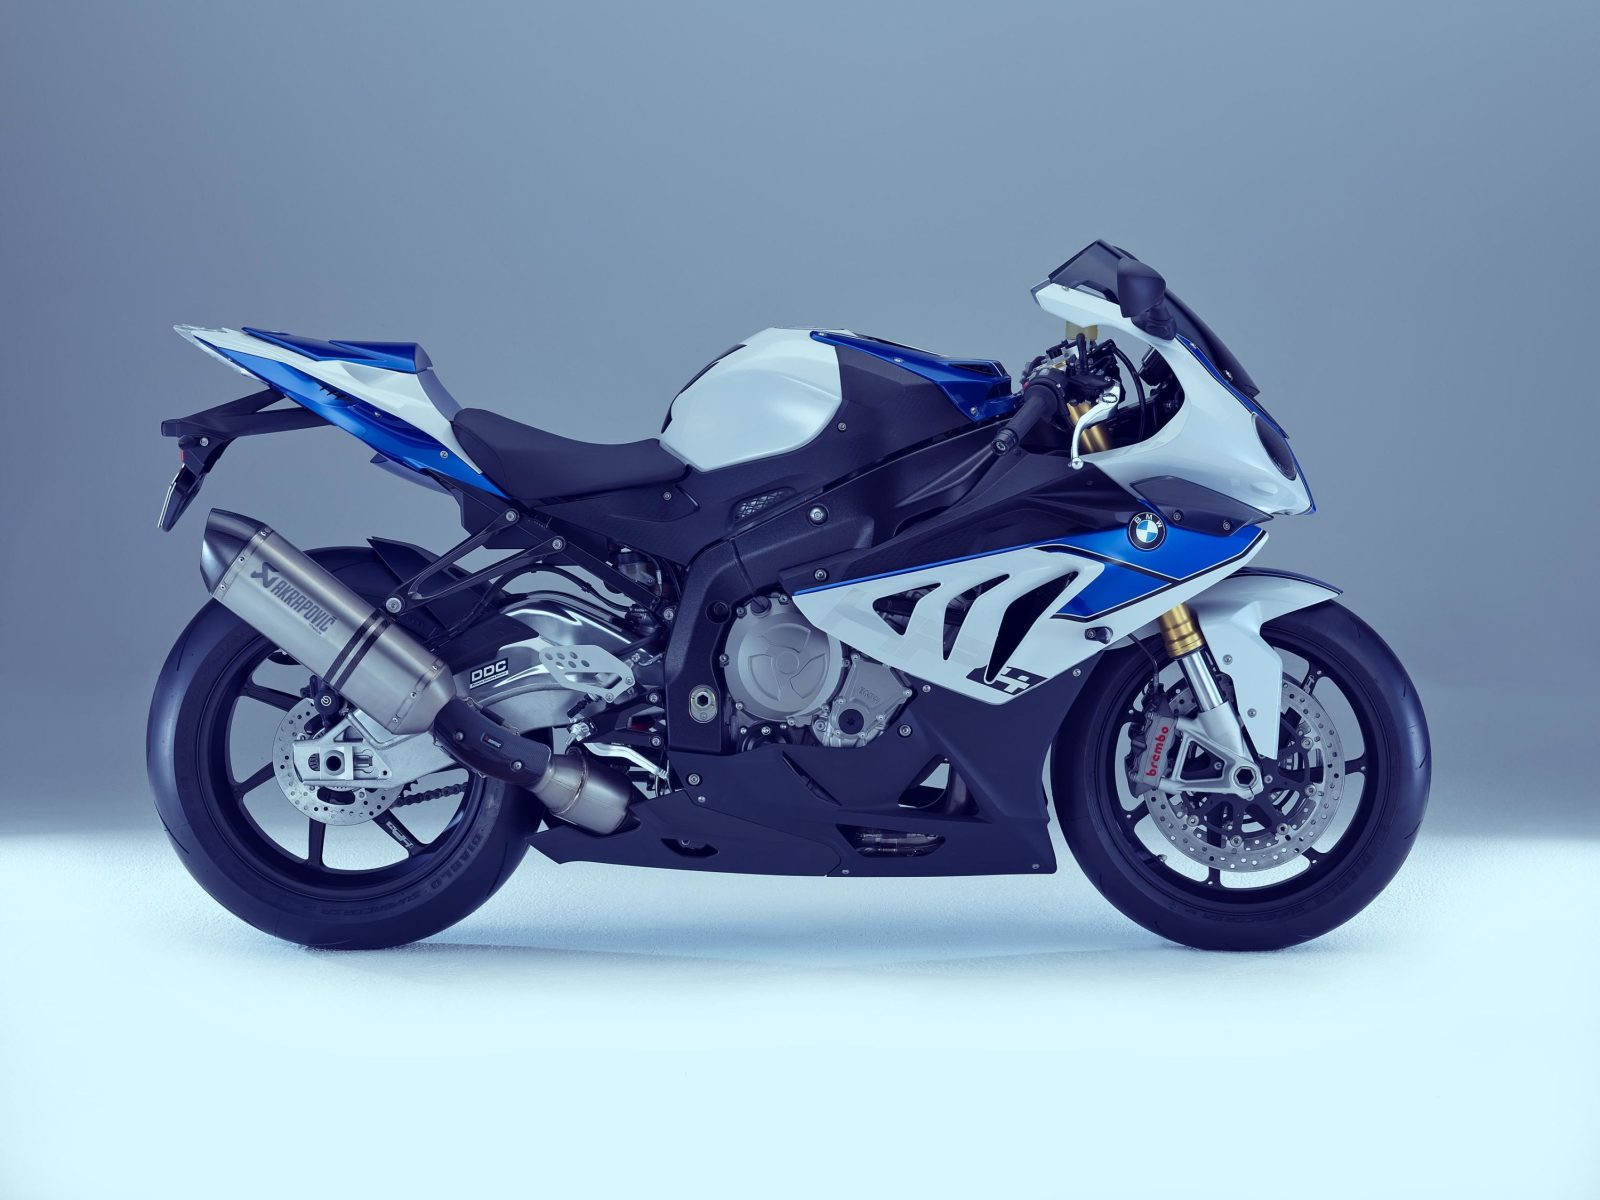 Nearly 21,000 BMW Motorcycles Recalled for Possible Fuel Leak